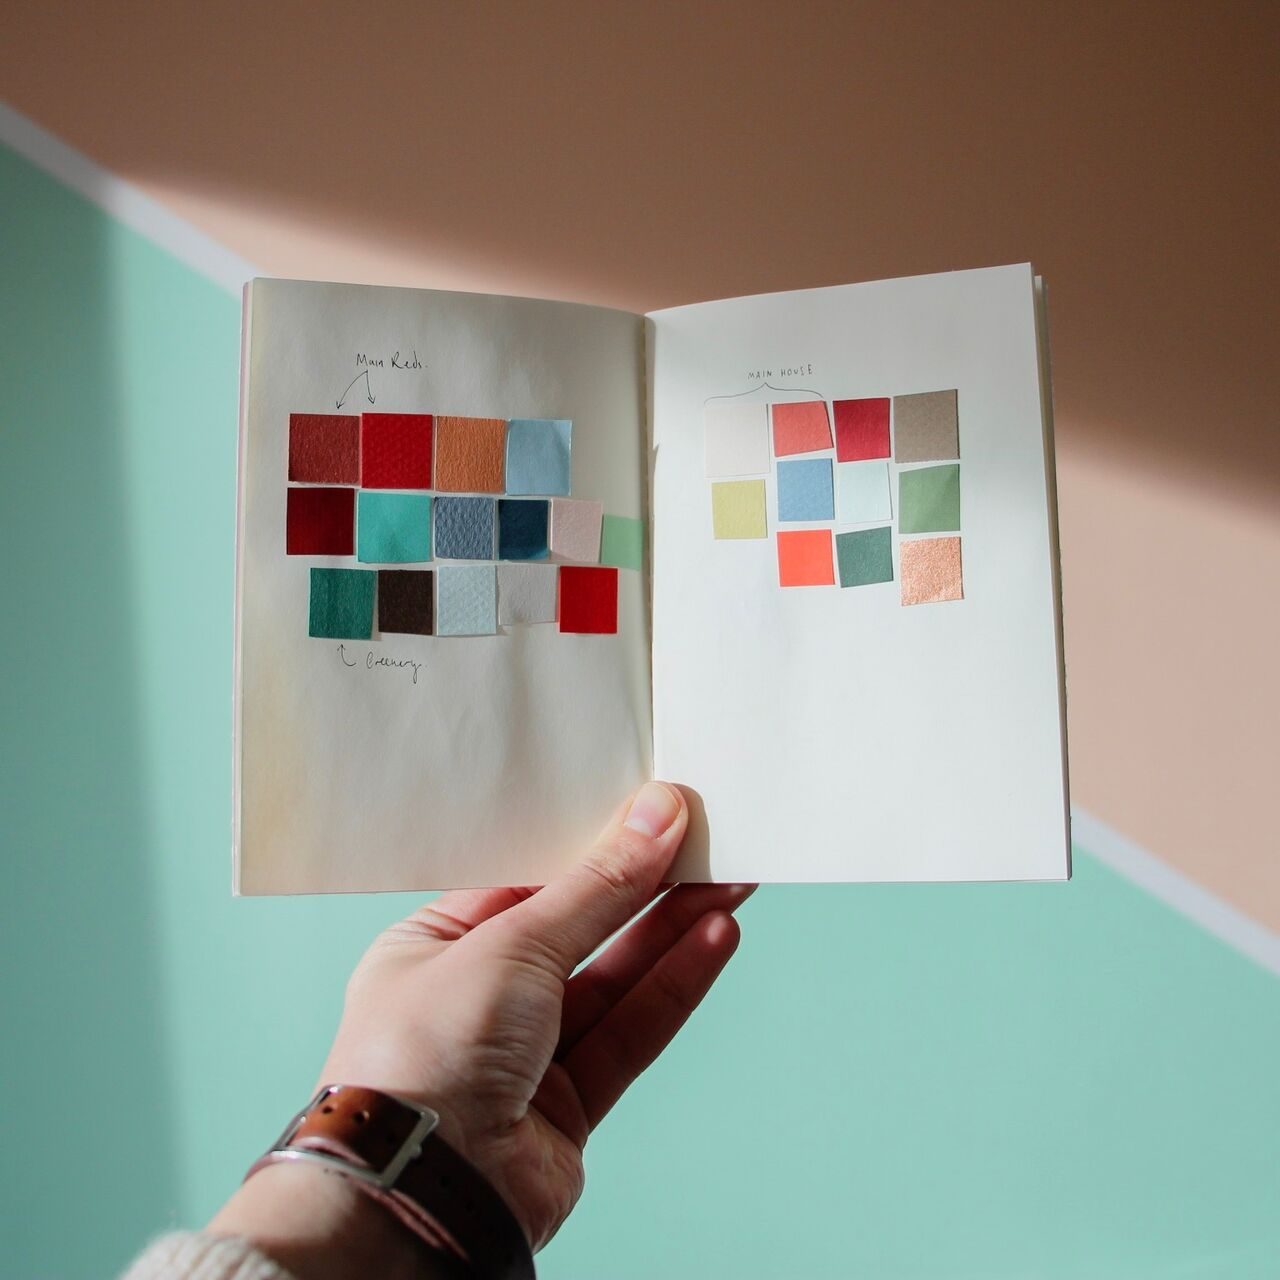 Photo of a sketchbook being held up and open by a hand. The sketchbook shows swatches of coloured card.